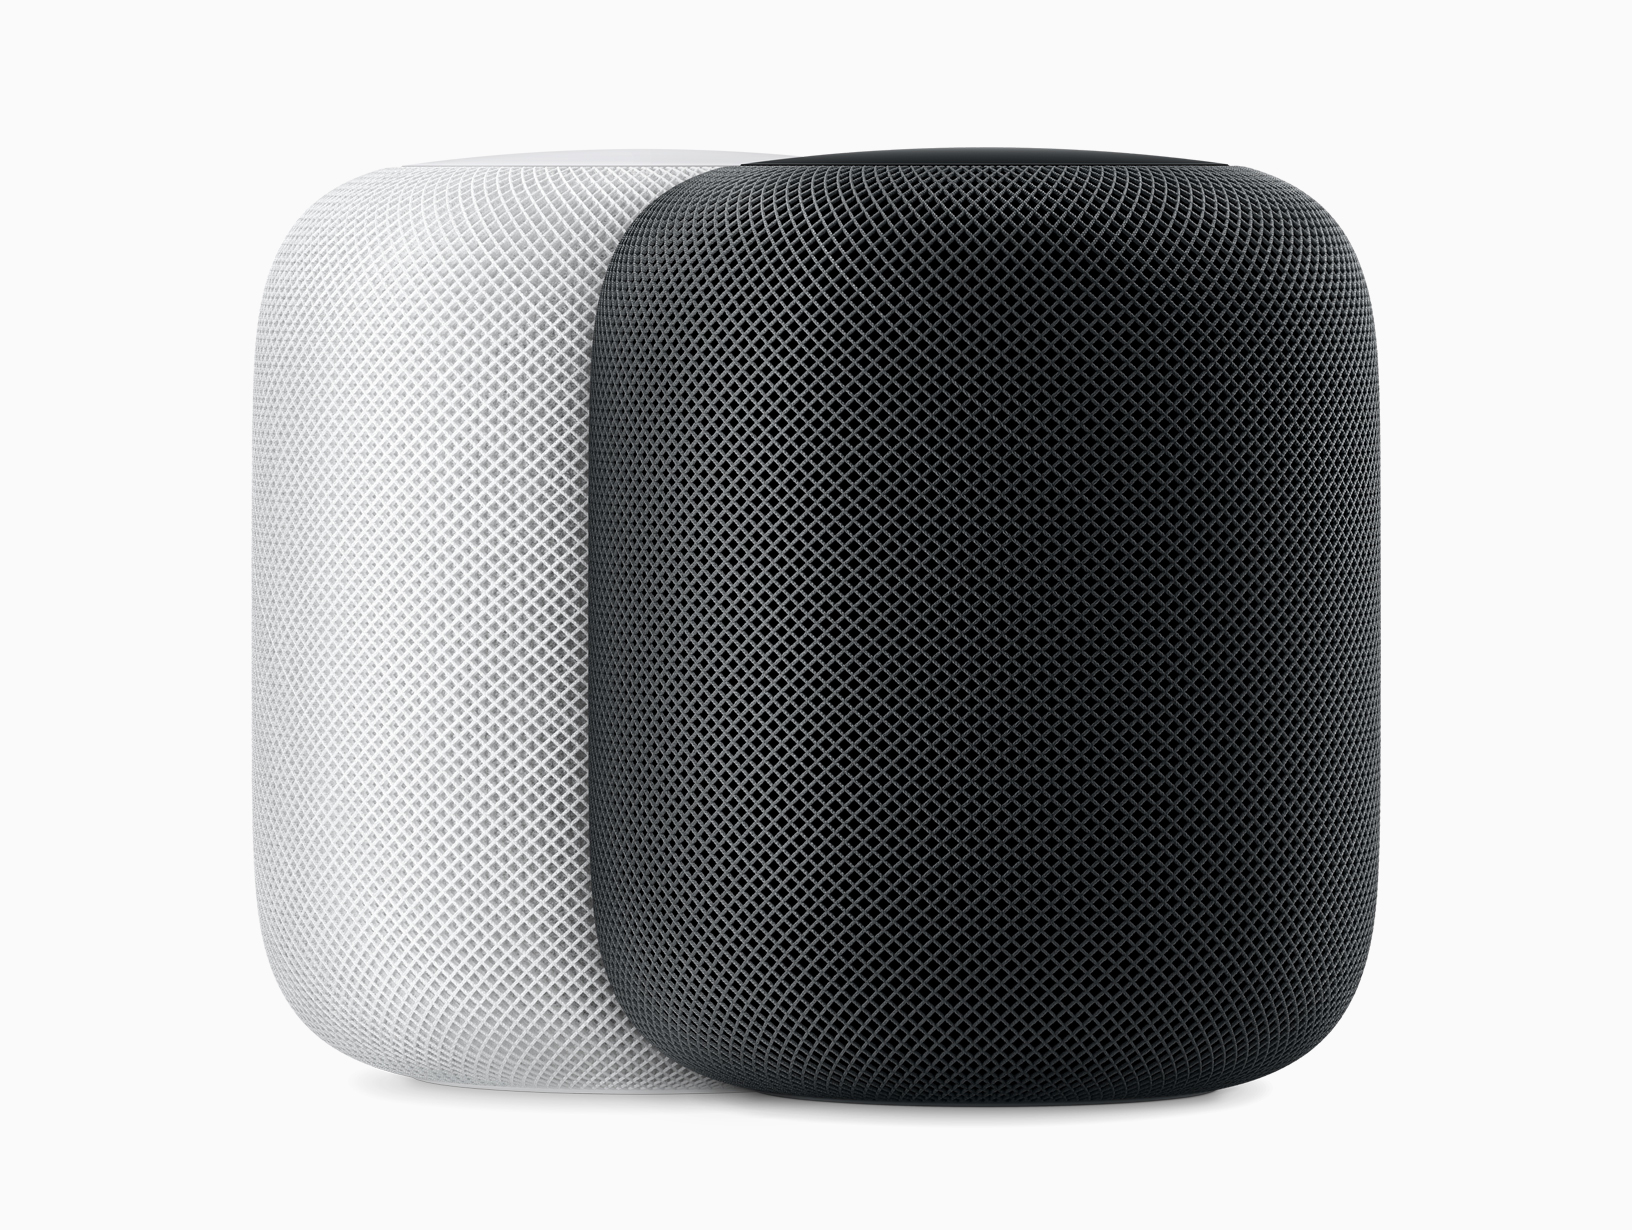 Apple's HomePod comes to the party with multi-room audio